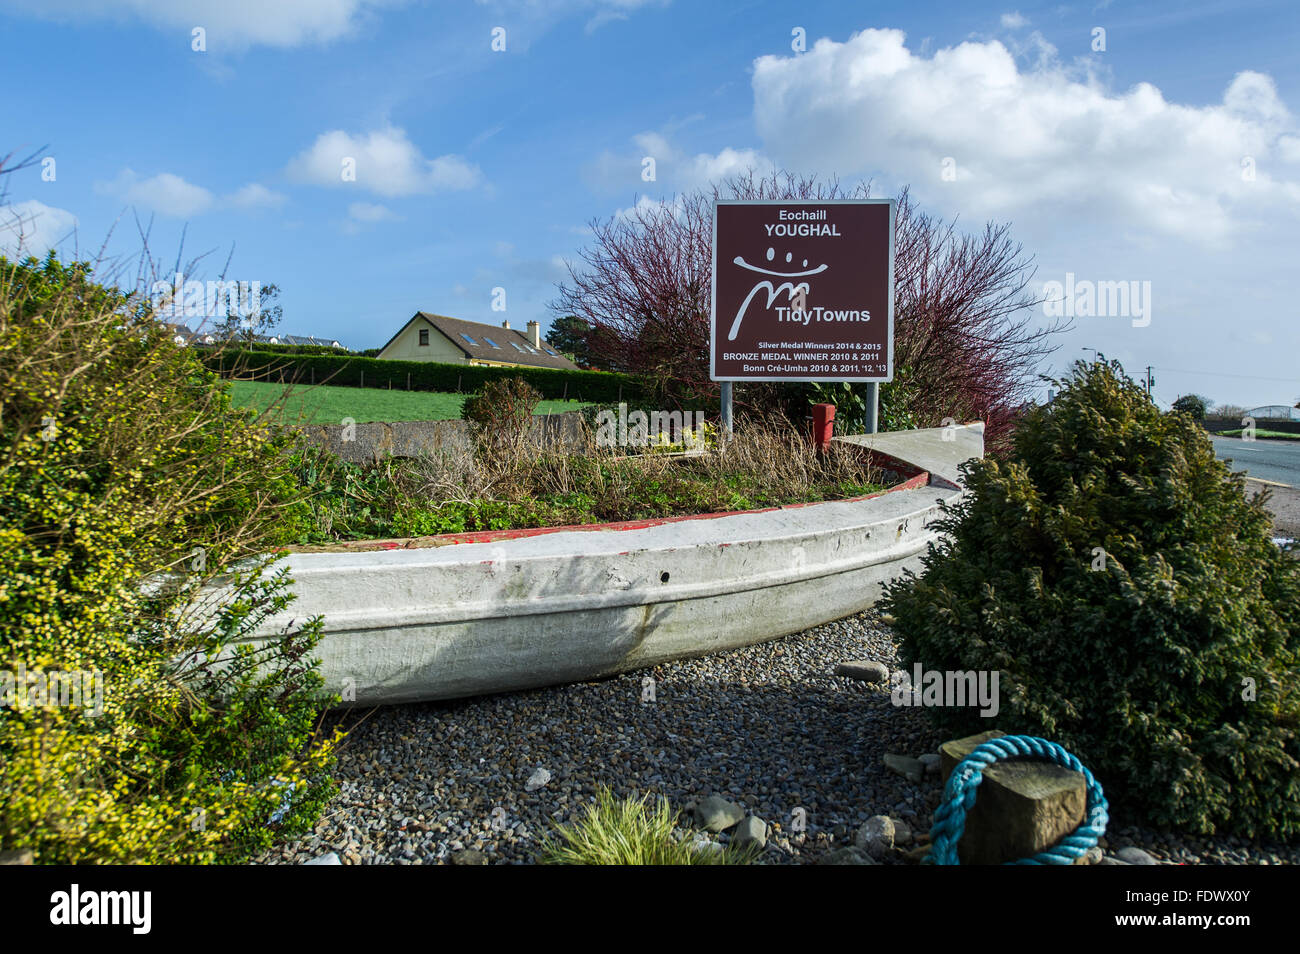 The Youghal Tidy Towns sign with a boat, just outside Youghal, Co Cork, Ireland - Stock Image